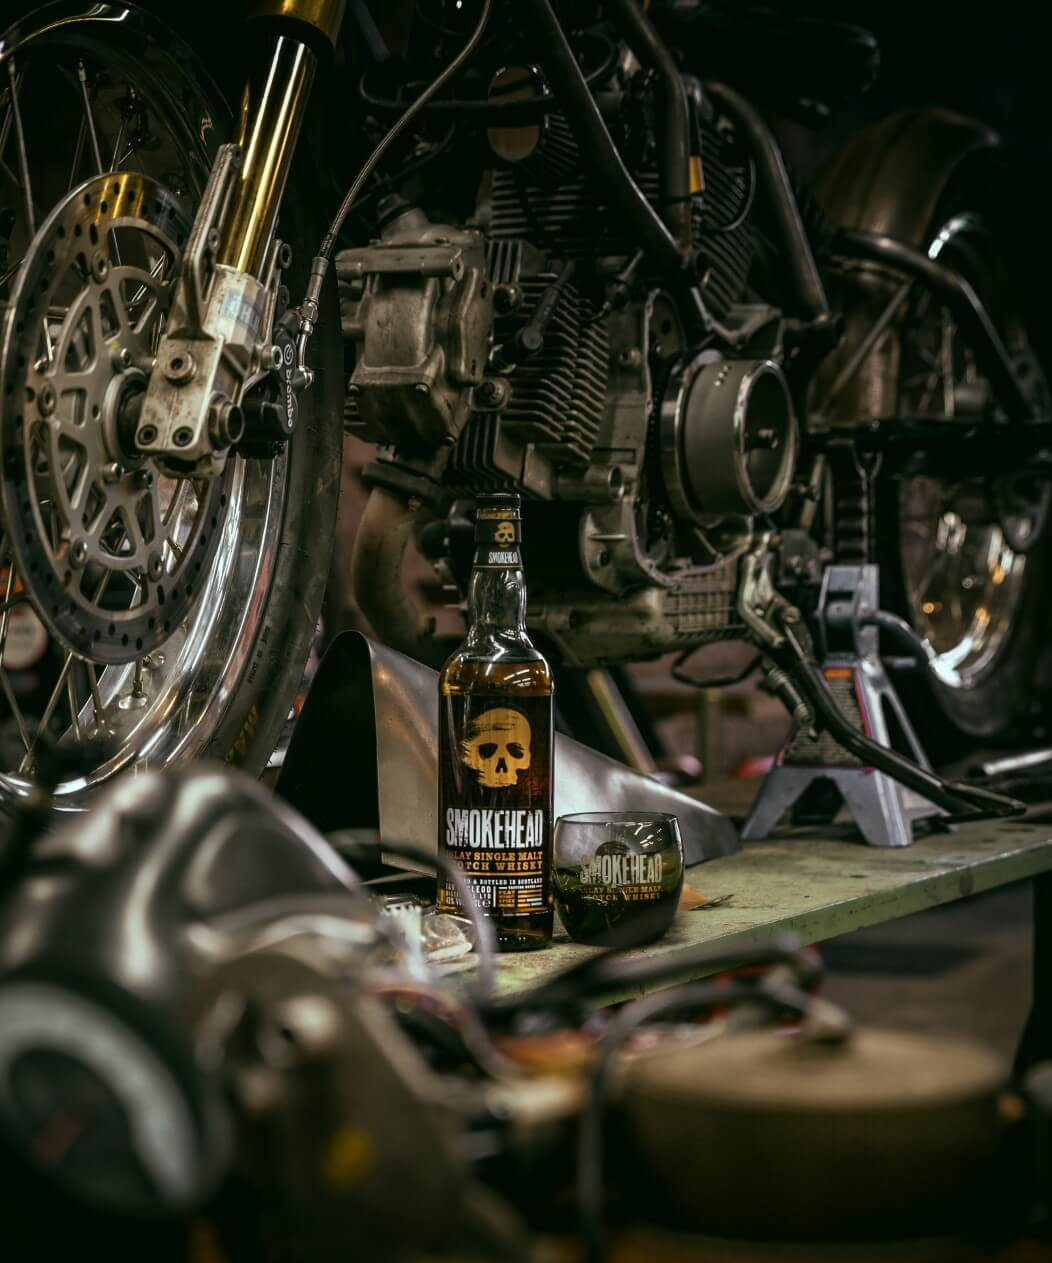 A bottle of Smokehead and The Smoker under construction. Photo by Christopher Coates.